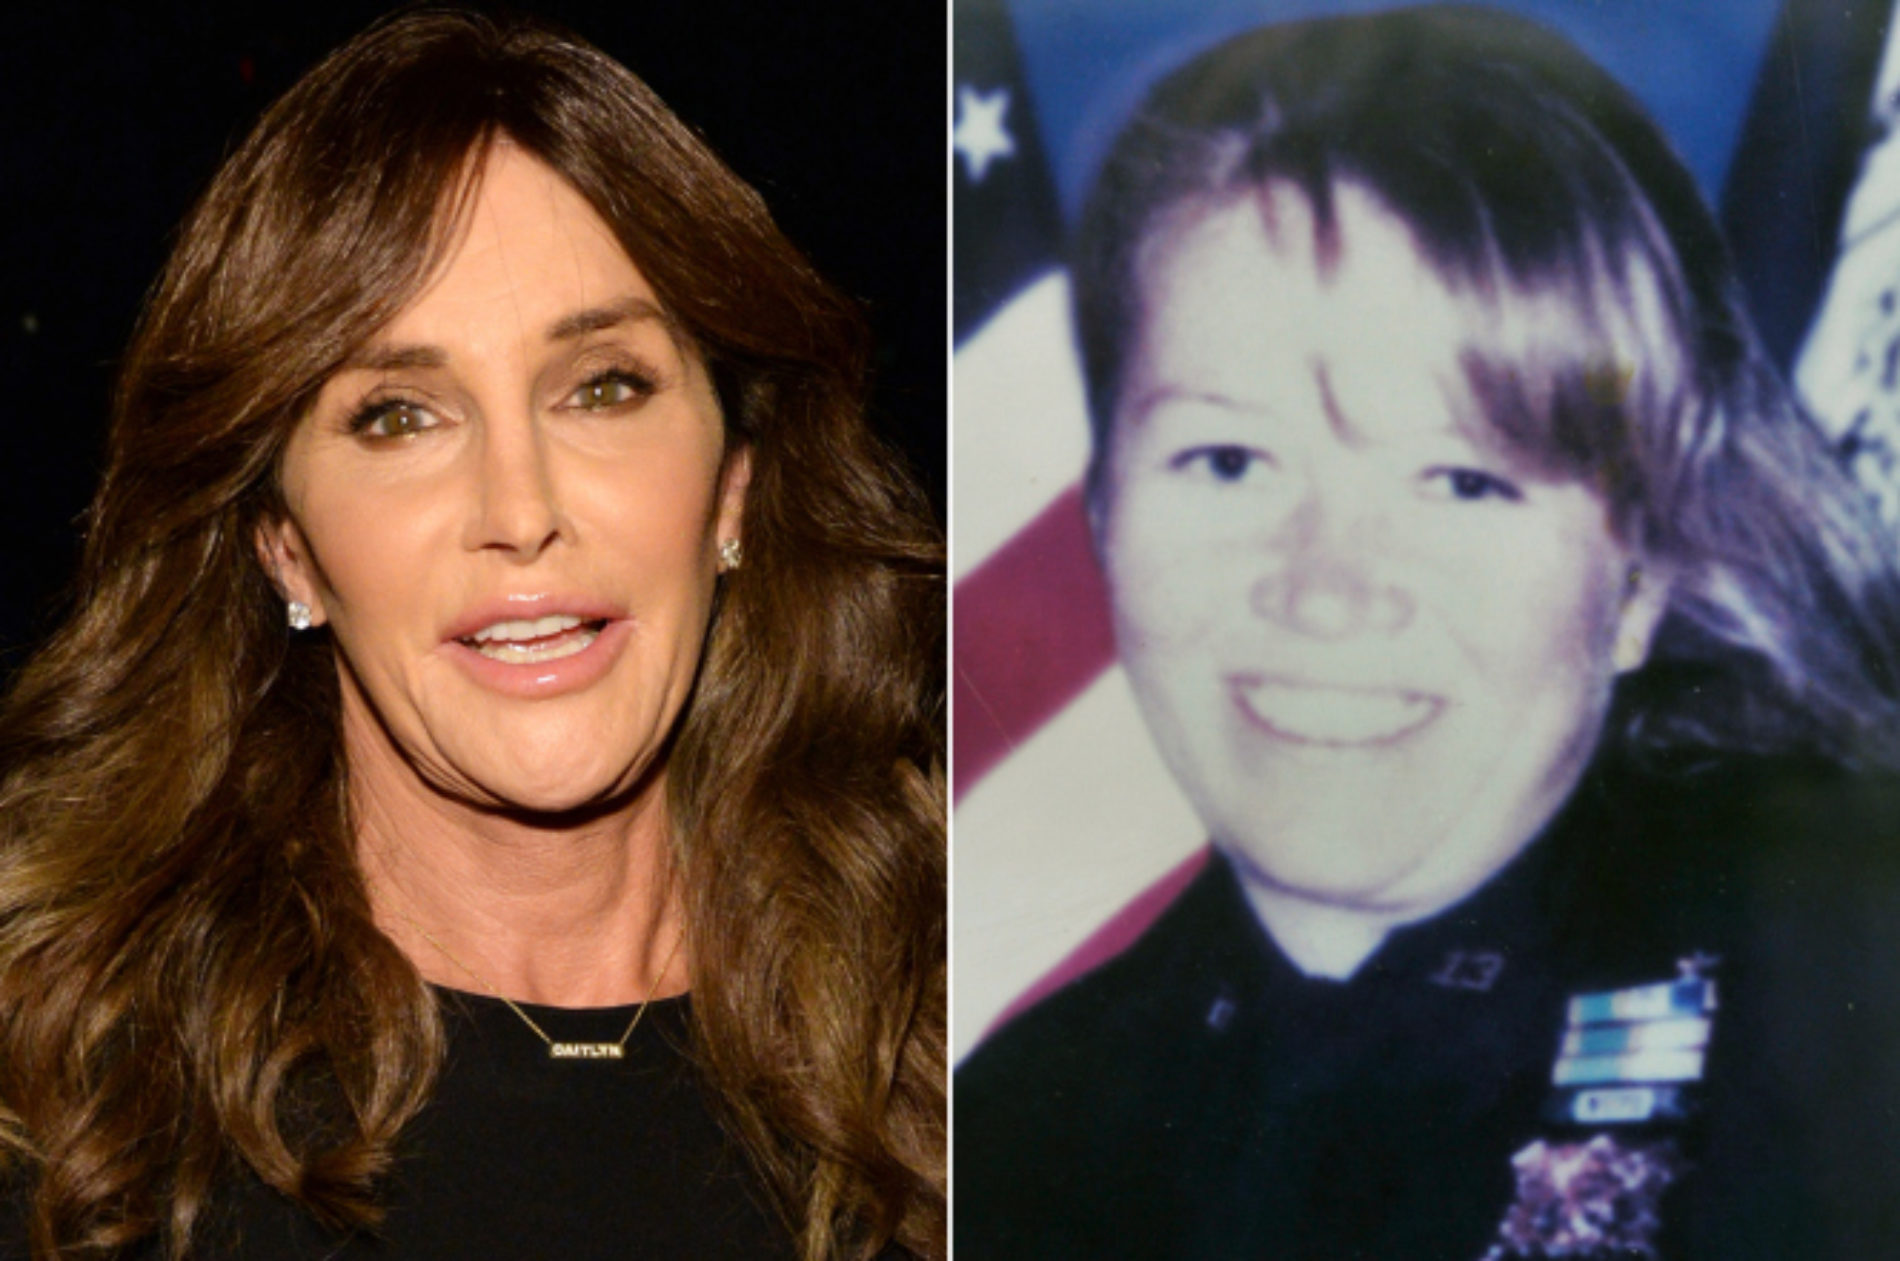 Husband of 9/11 Hero sends award back because of Caitlyn Jenner